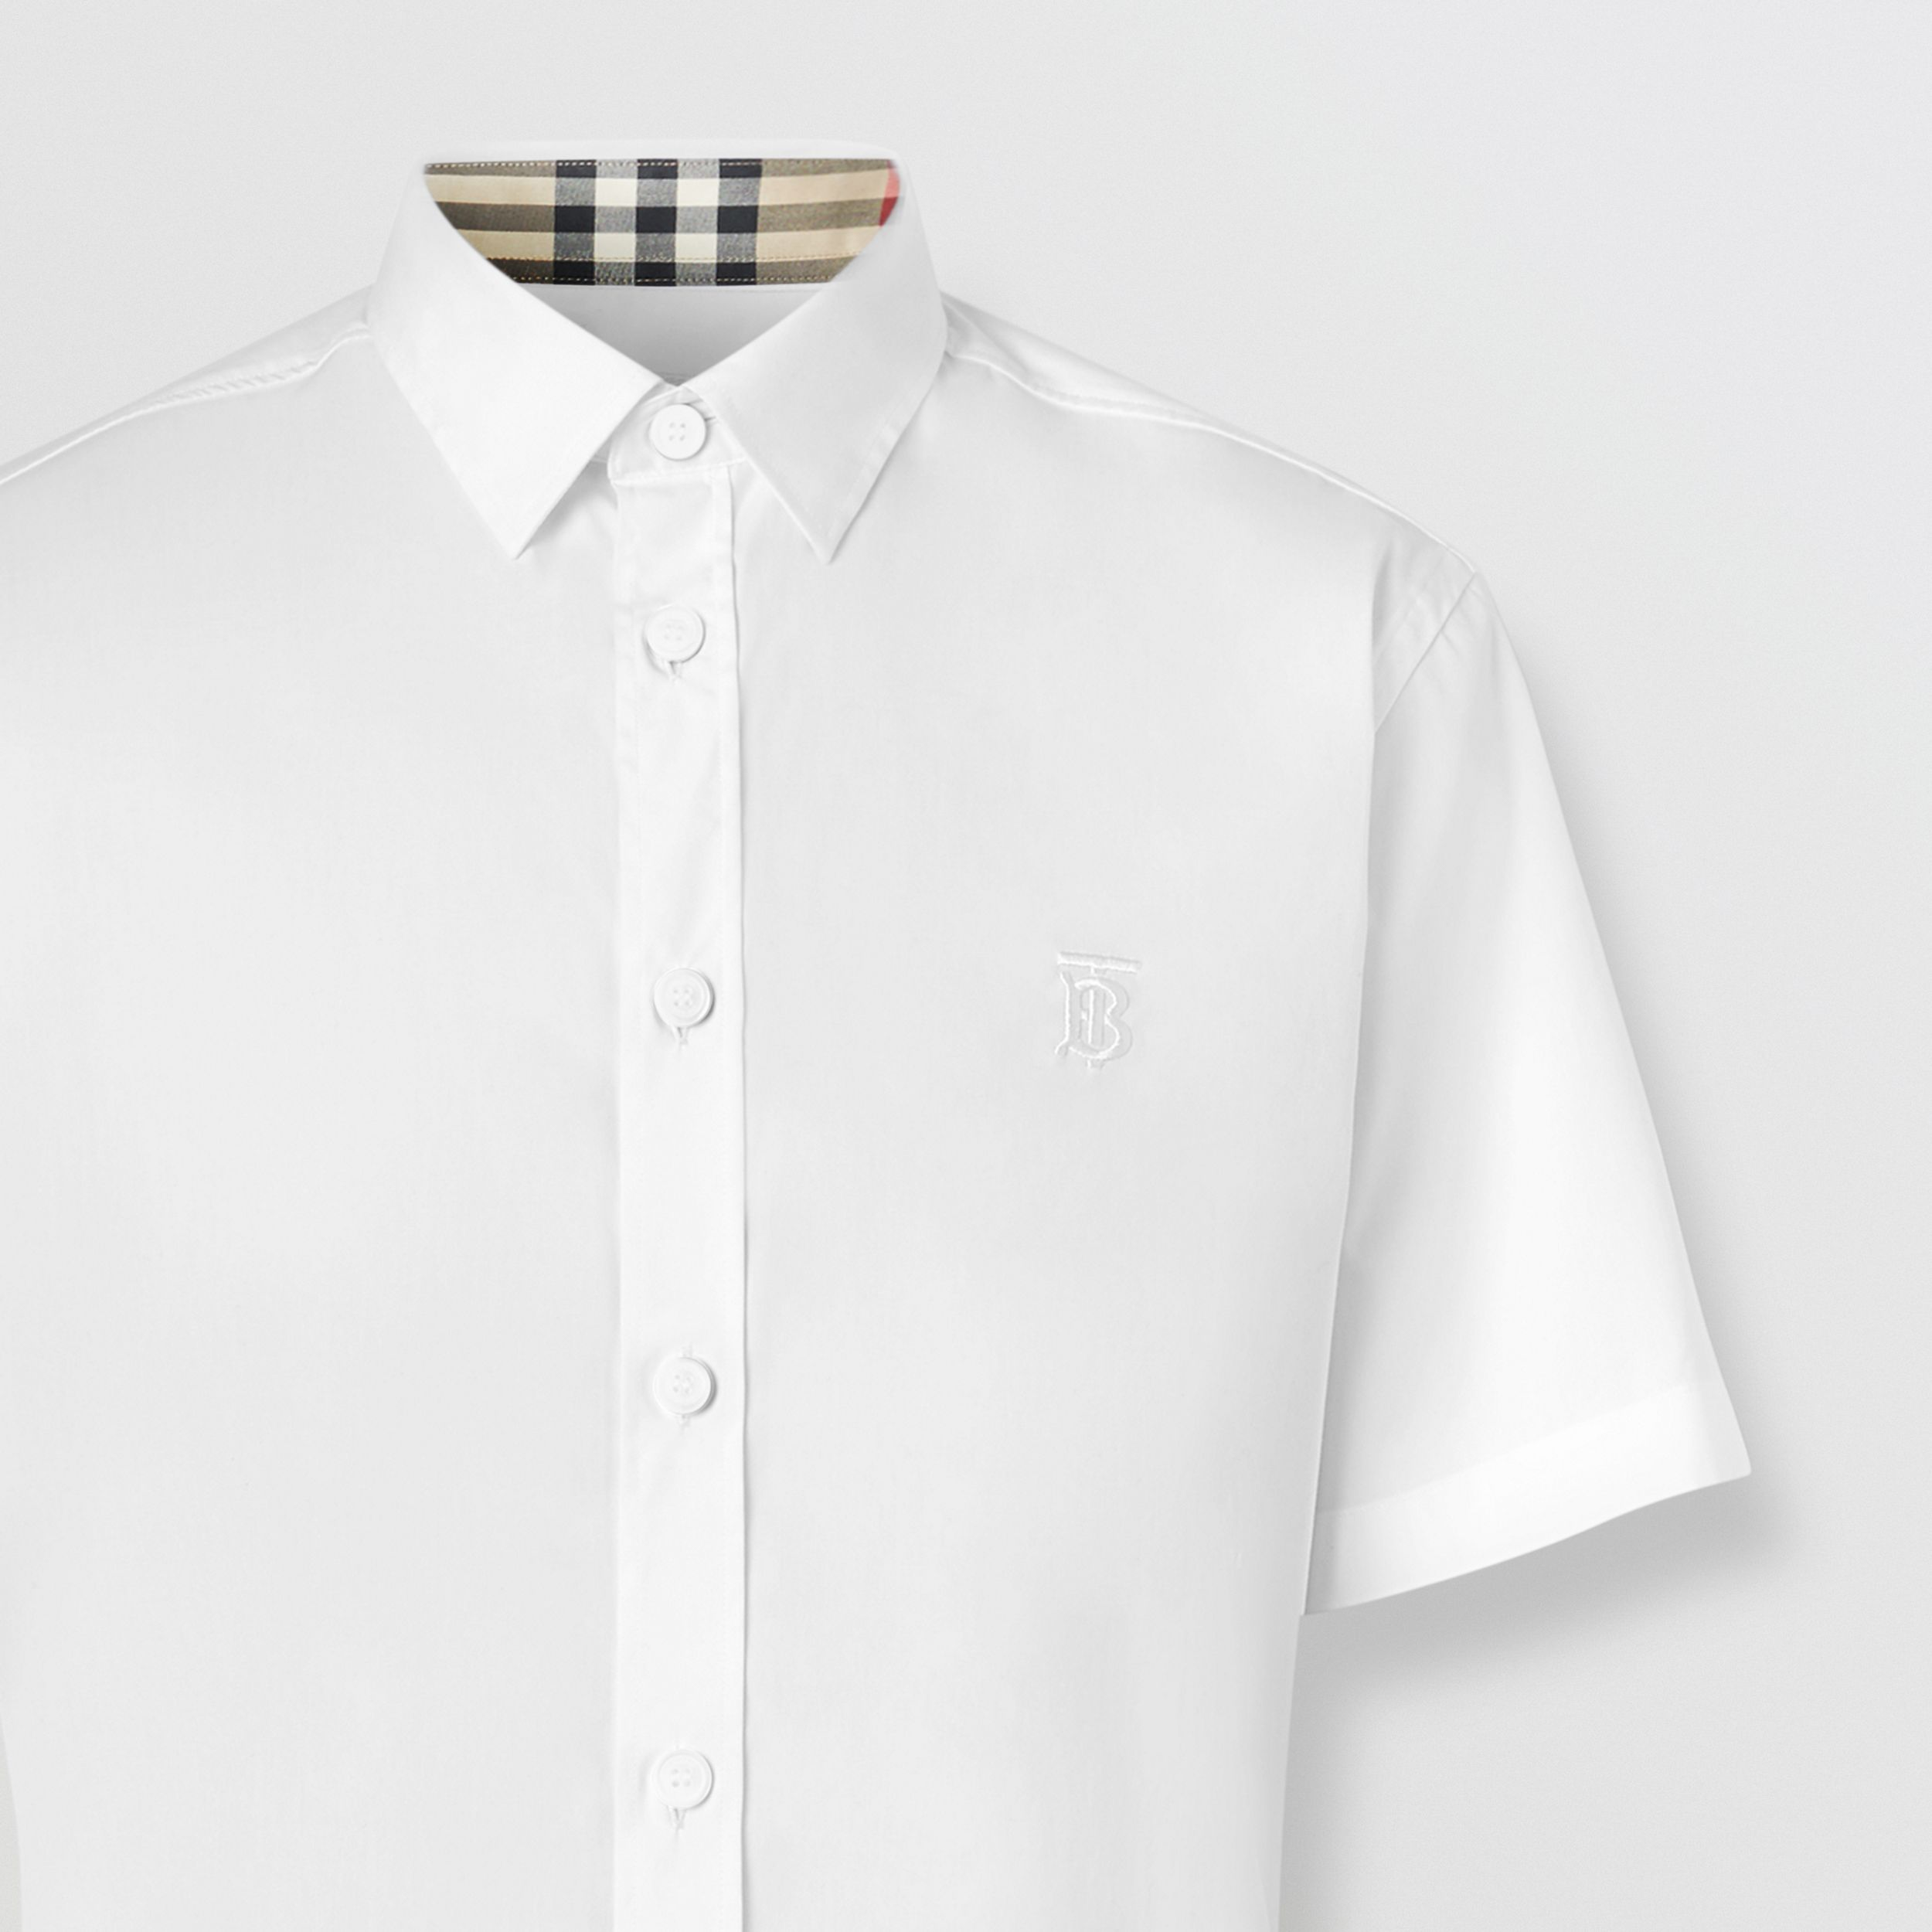 Short-sleeve Monogram Motif Stretch Cotton Shirt in White - Men | Burberry United States - 2